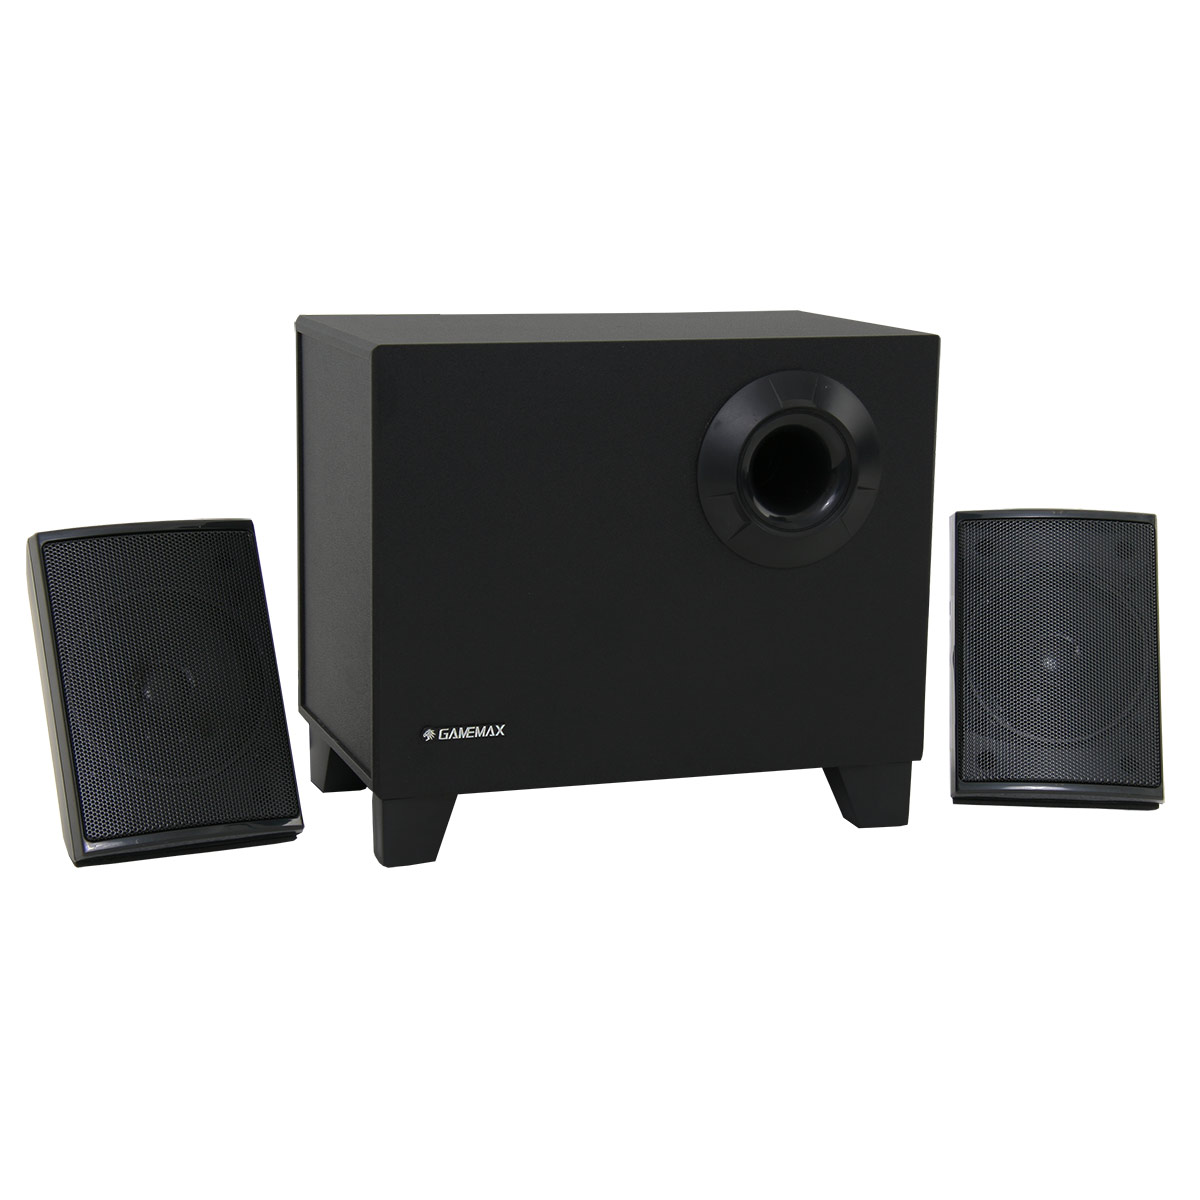 how to add speakers to a 2.1 system